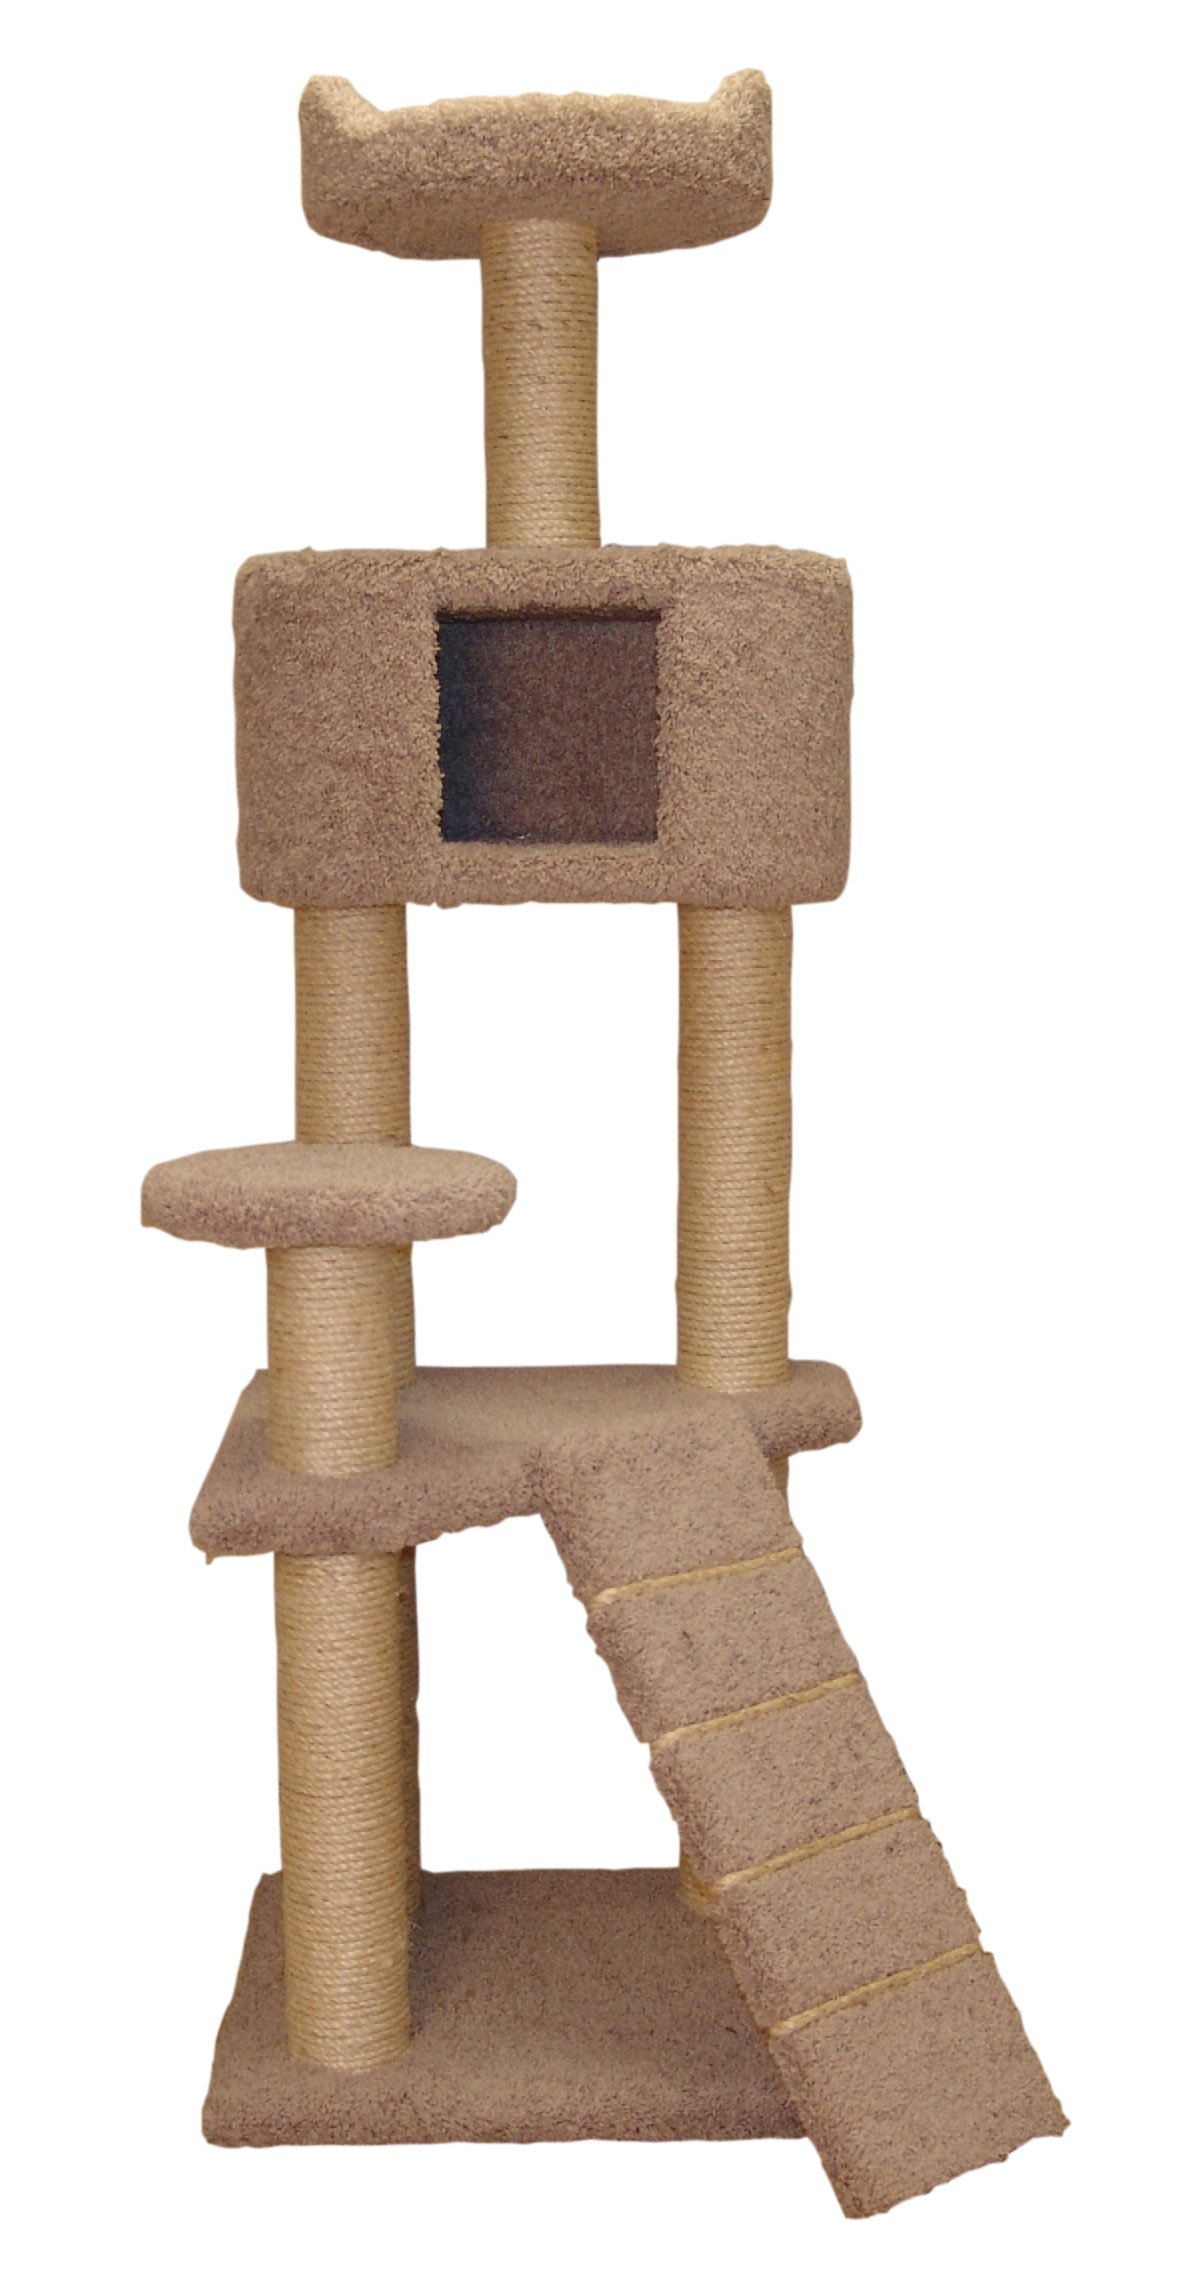 Classy Kitty 64'' 5 Story Cat Tree with Condo and Sky Lookout and Ramp-Natural Beige 28x30x64